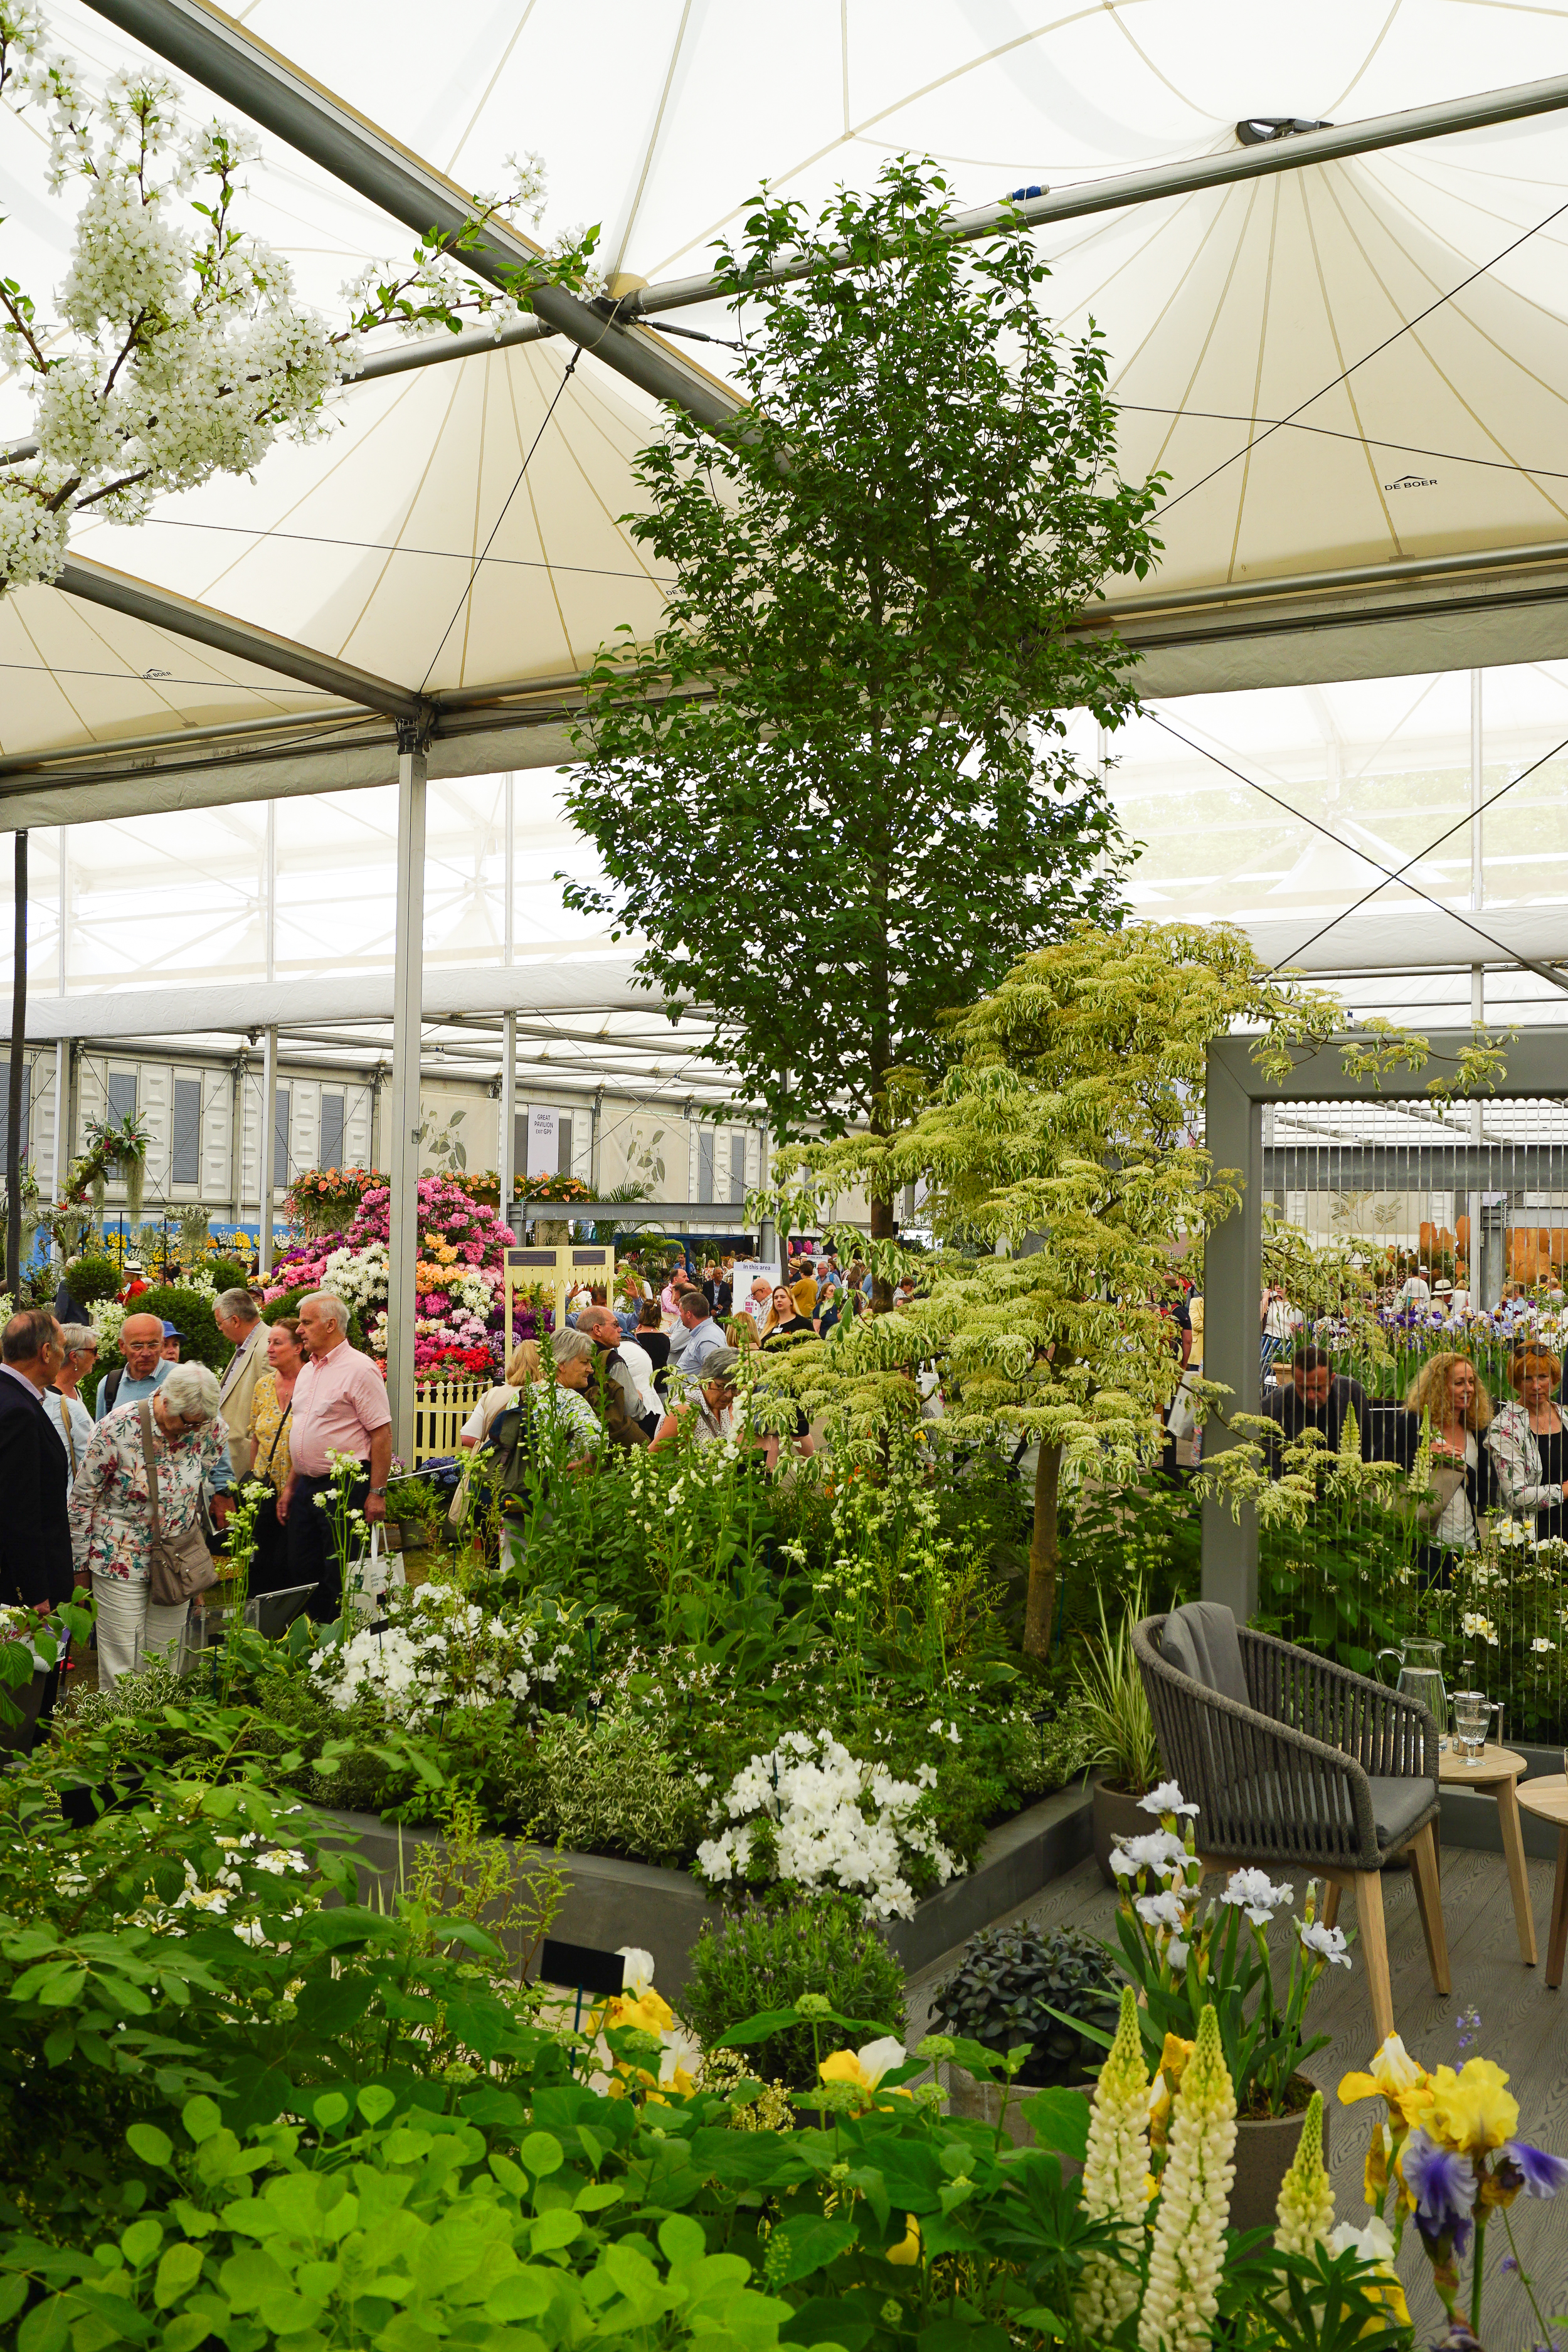 My first ever RHS Chelsea Flower Show